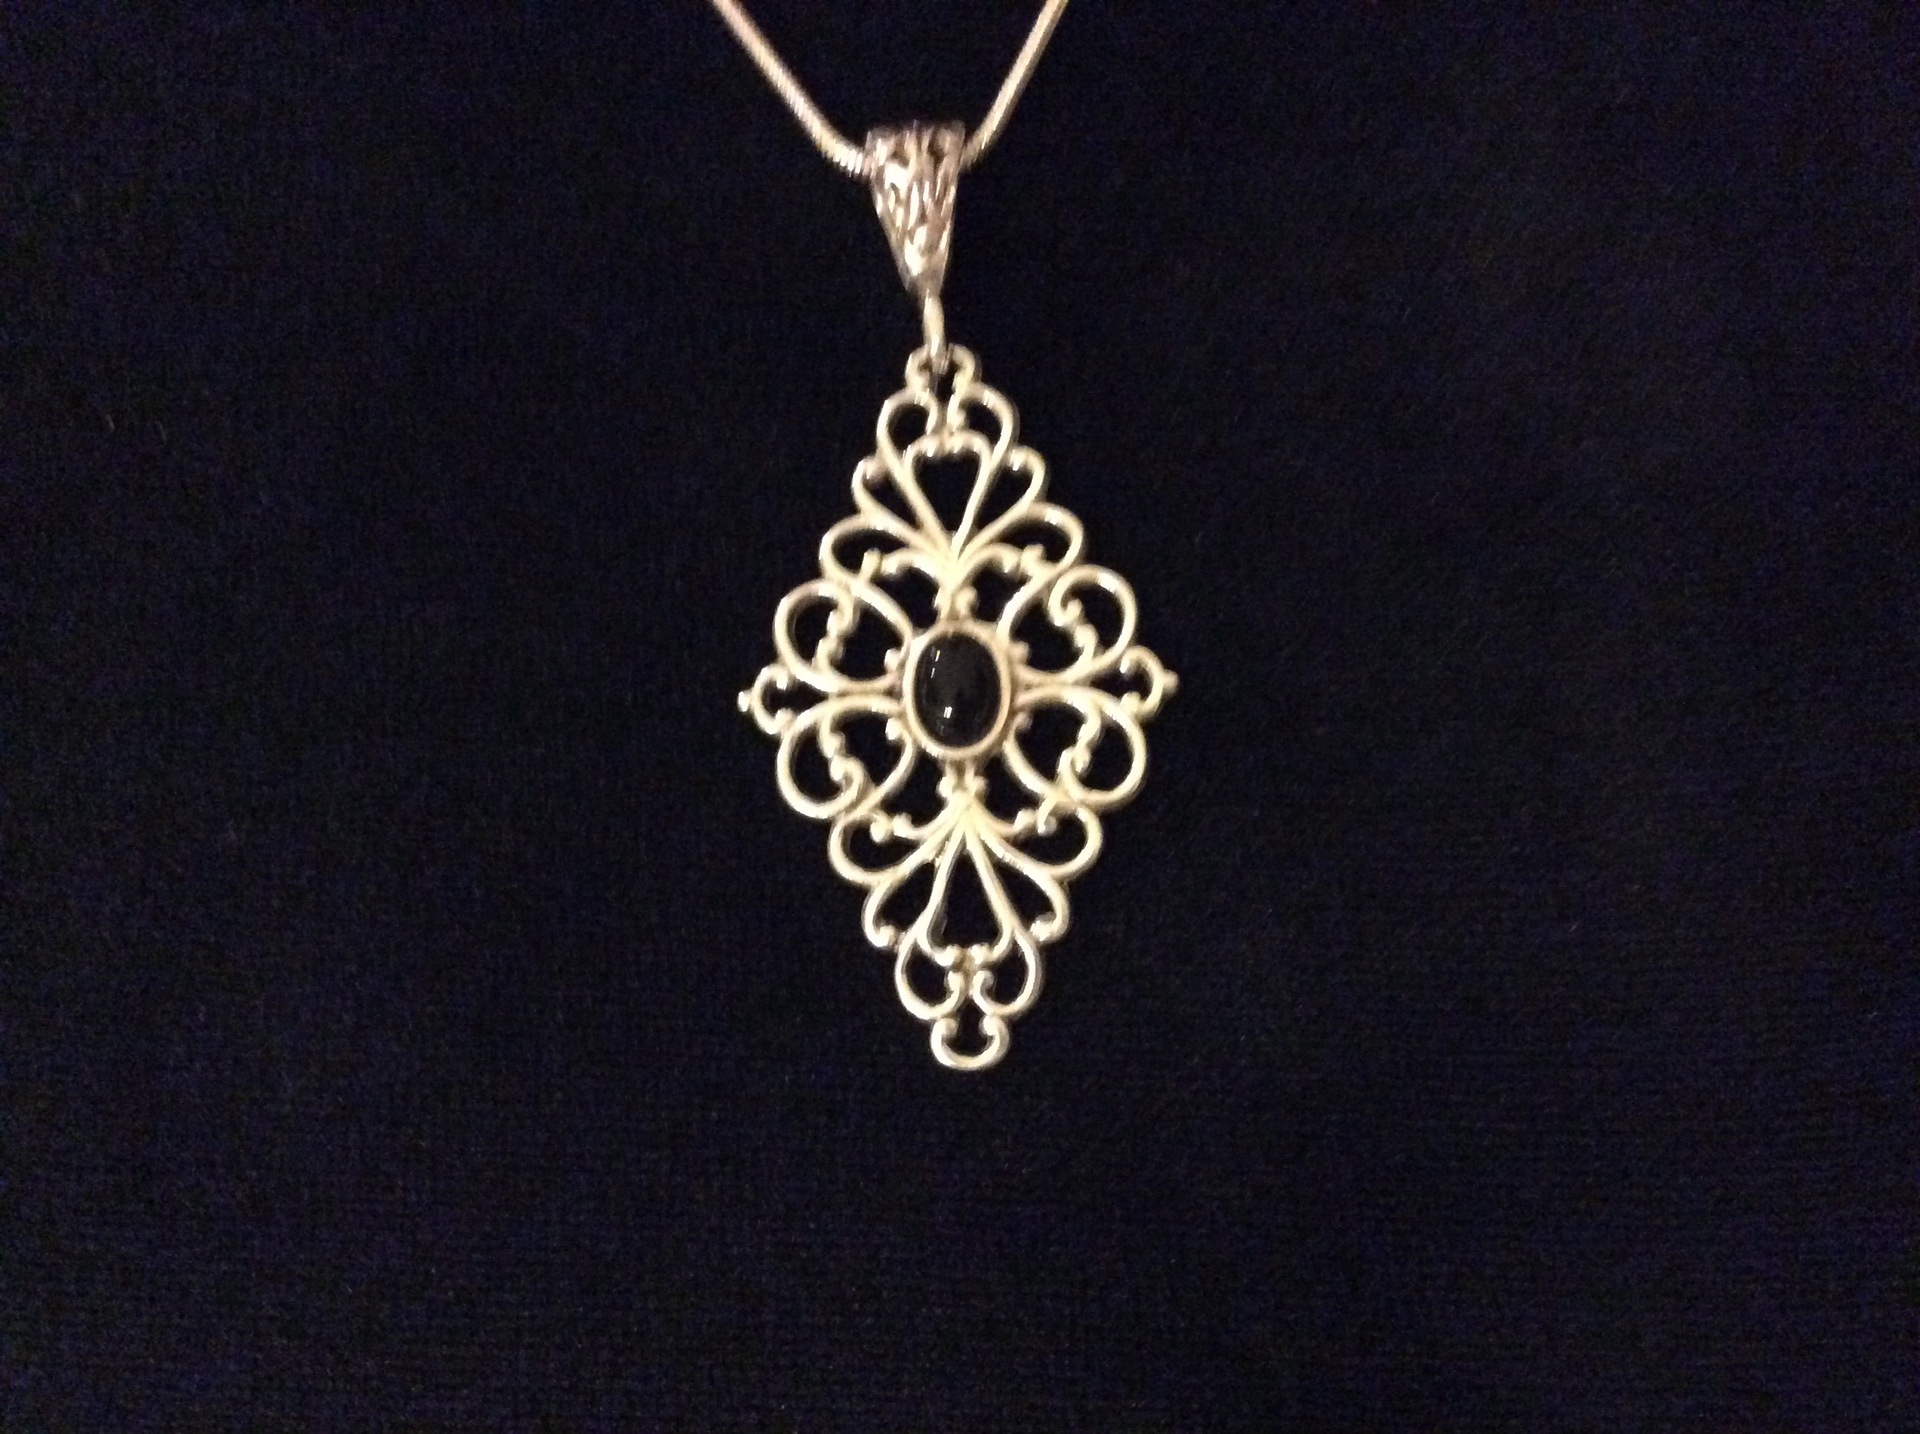 Sterling Silver Filigree Pendant with Onyx